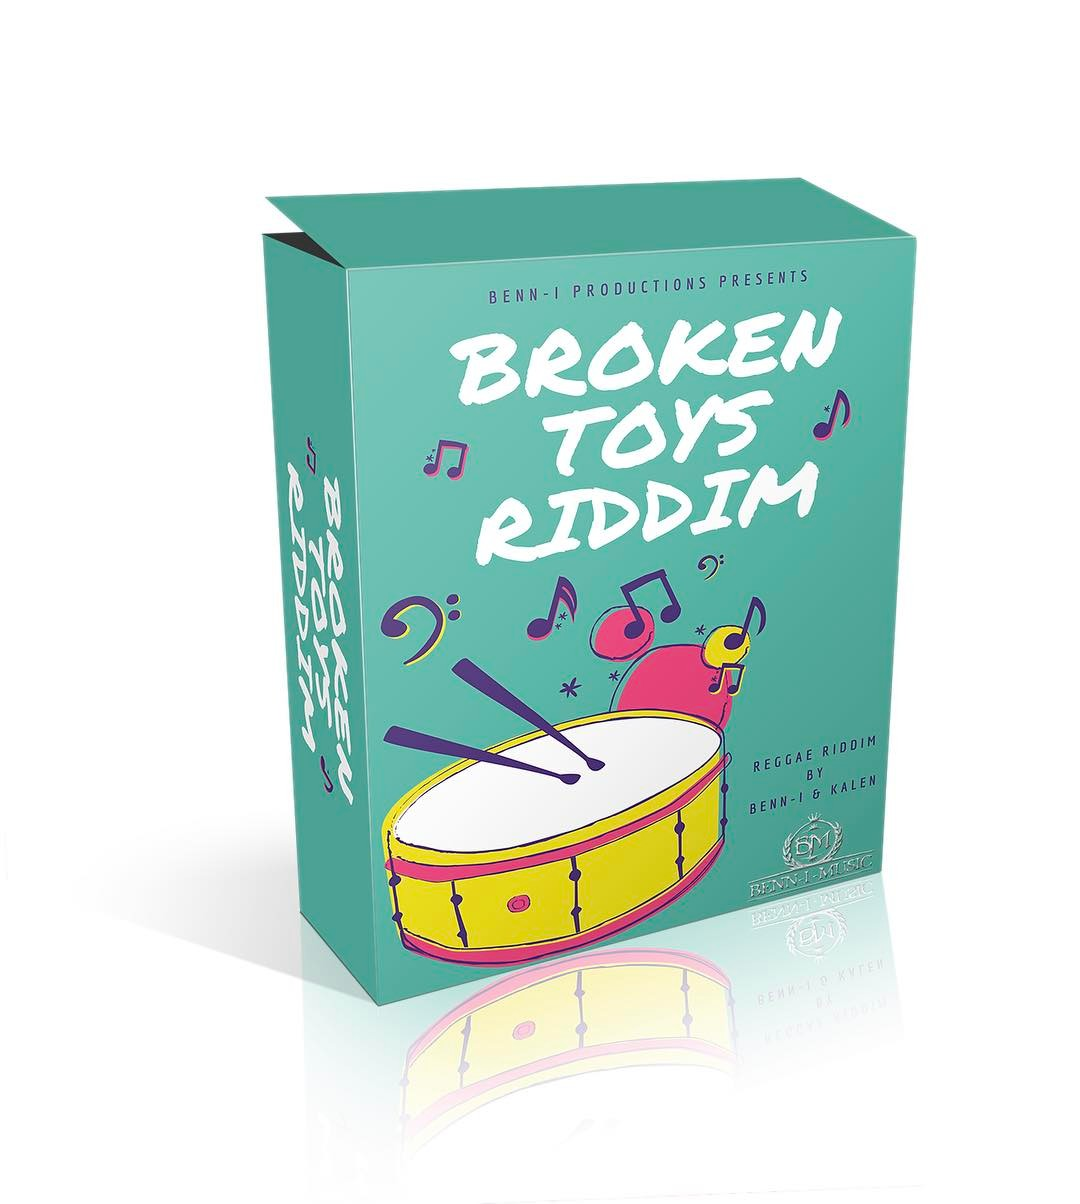 Broken Toys Riddim Reggae melodic  pop tropical hiphop funkyhellip